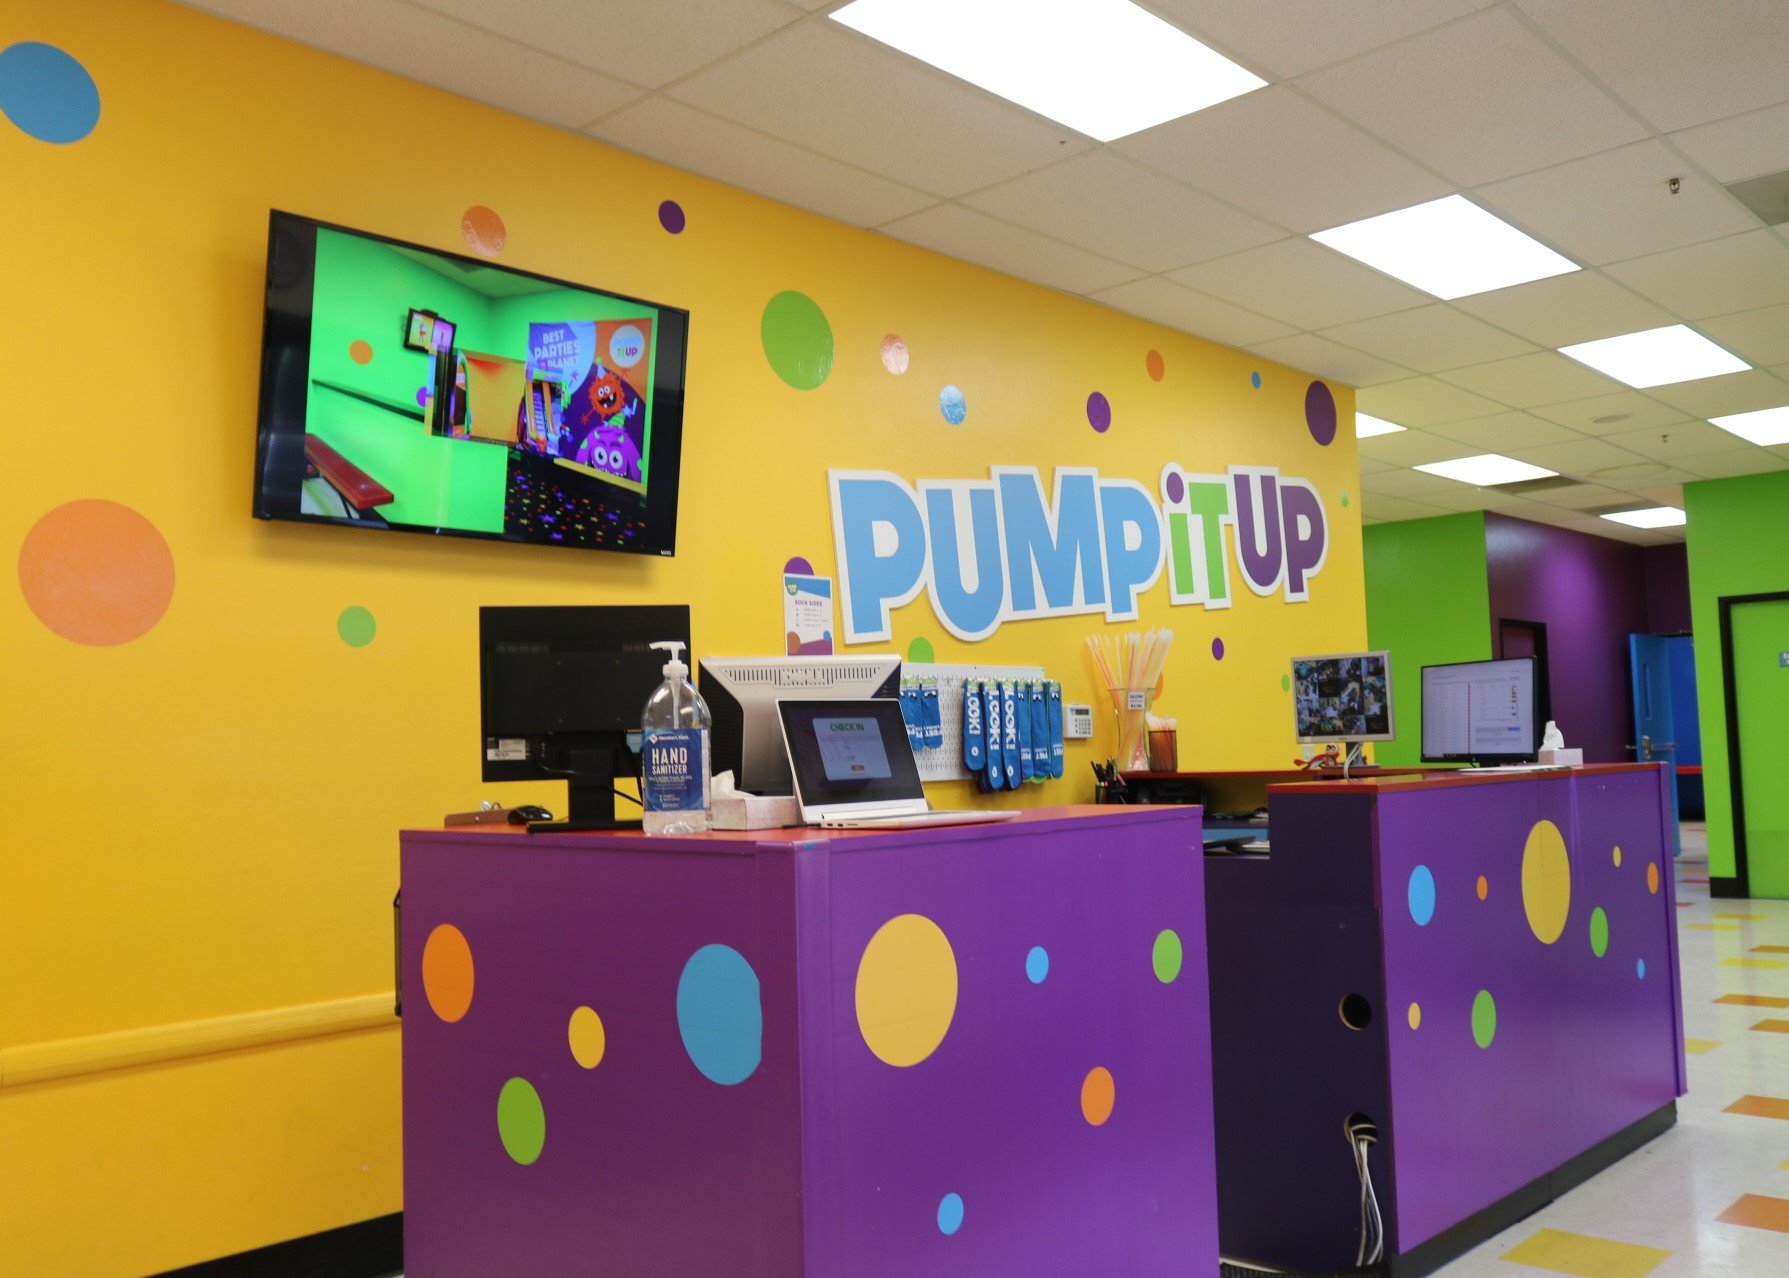 Pump It Up lobby of a kid's play center for private birthday parties.